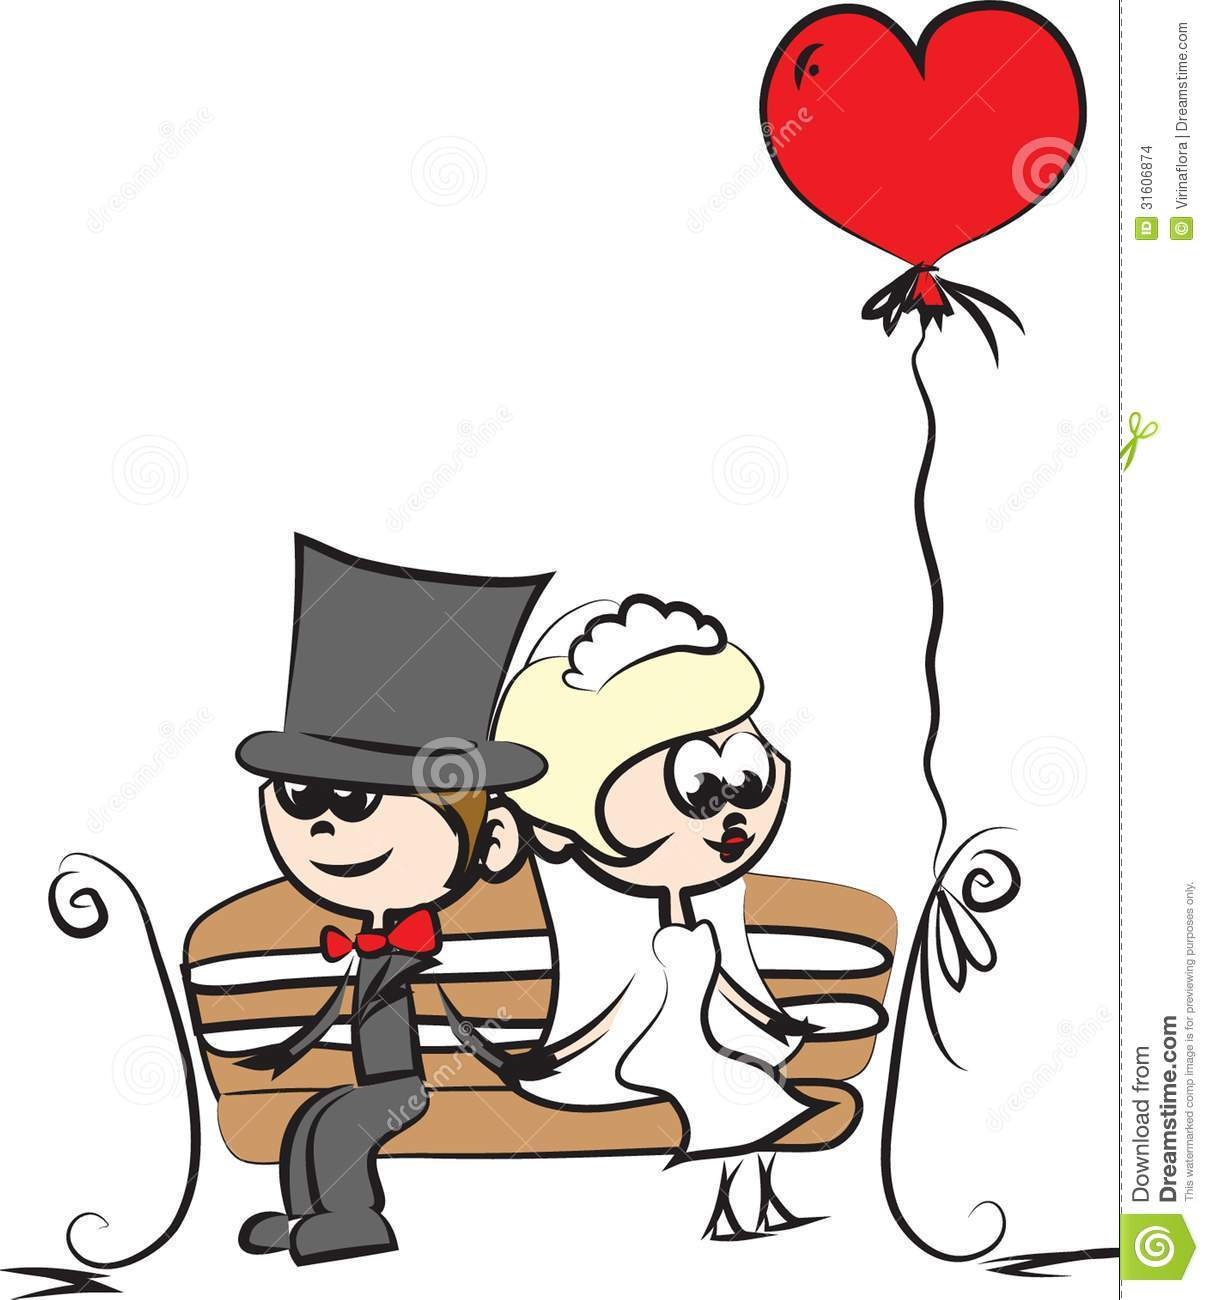 Cartoon wedding picture,vector illustration picture.